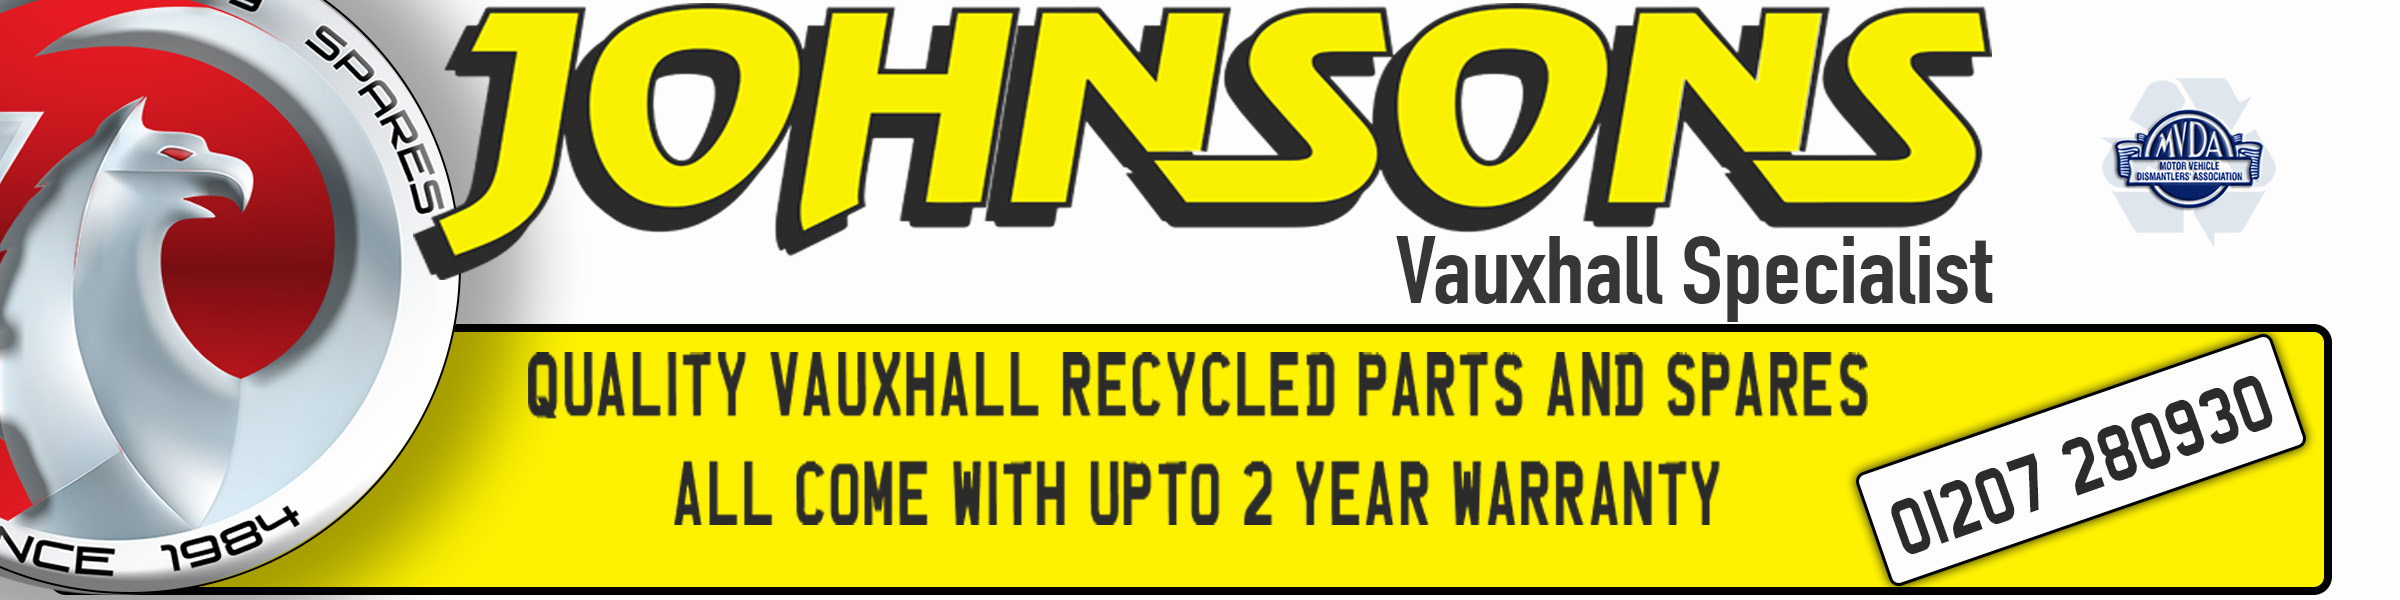 Johnsons Vauxhall Specialists